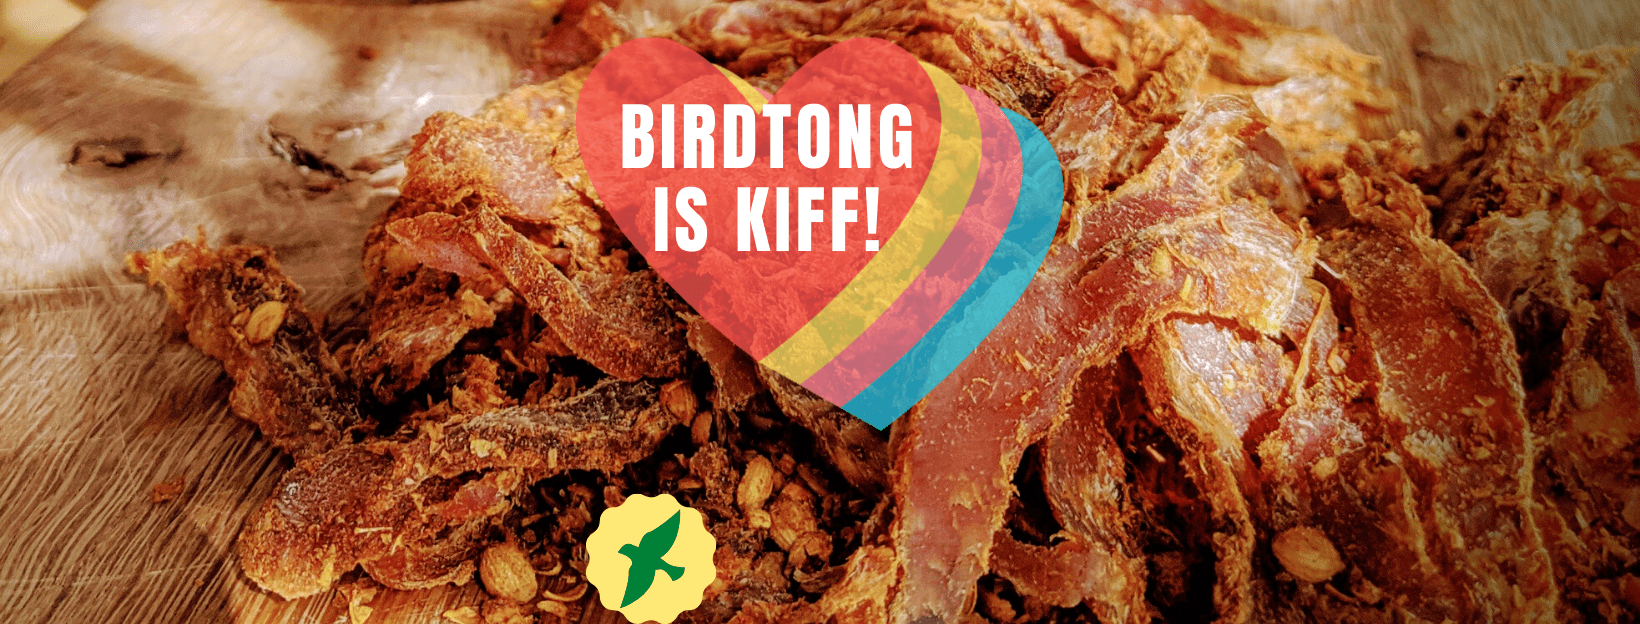 The ultimate game biltong 5 reasons why birdtong is Kiff!